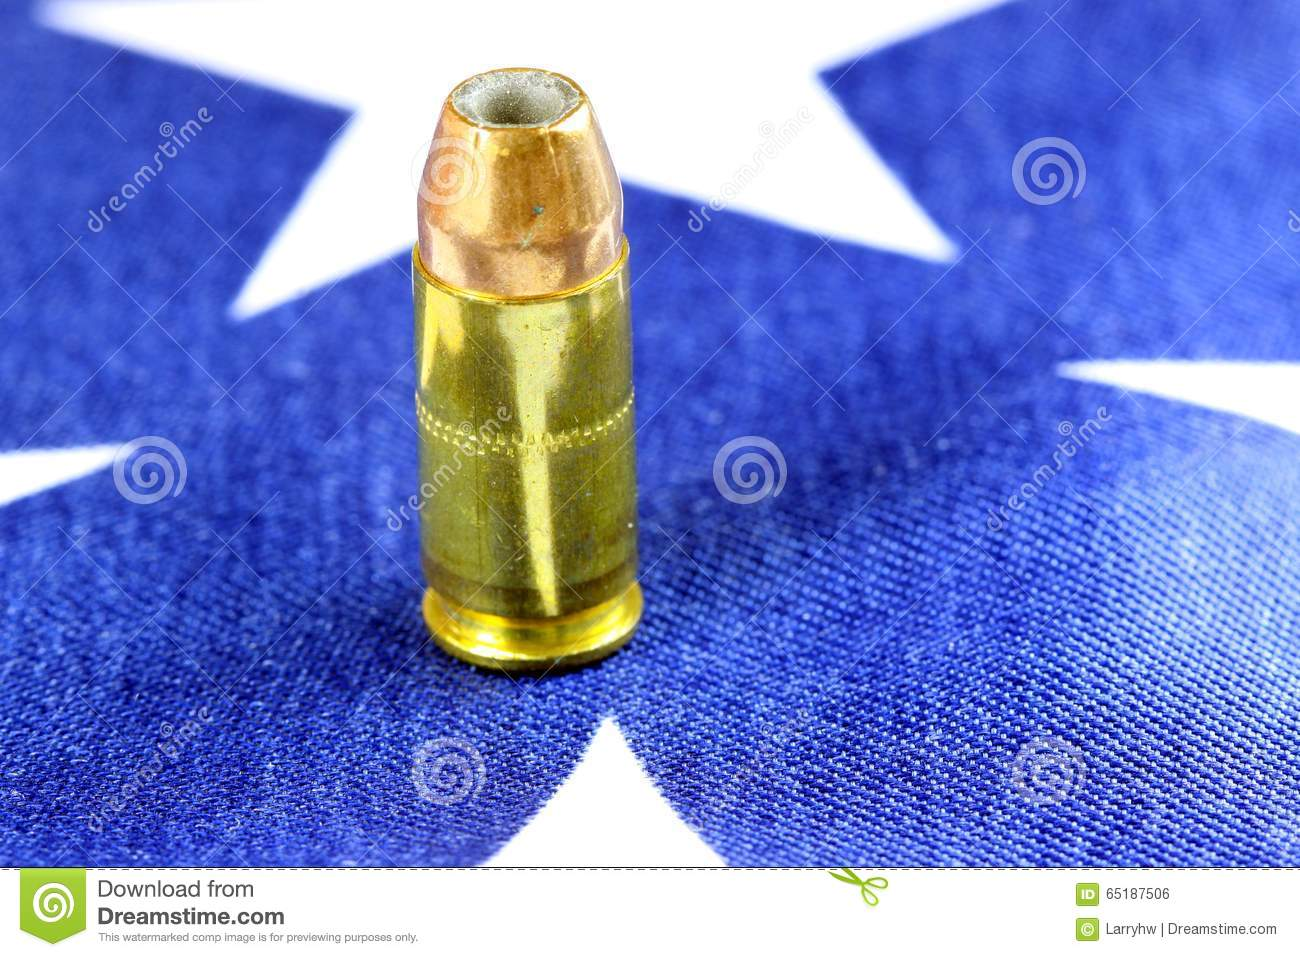 """an analysis of the second amendment and the gun ownership issues in the united states Like many states in the southeast united states, georgia is very friendly to gun owners the state has a """"shall issue"""" concealed carry permit system that became even more friendly to gun owners after the state enacted the """"guns everywhere"""" law in 2014 which (among other things) legalized concealed carry by license holders in hospitals, churches, restaurants, and bars."""